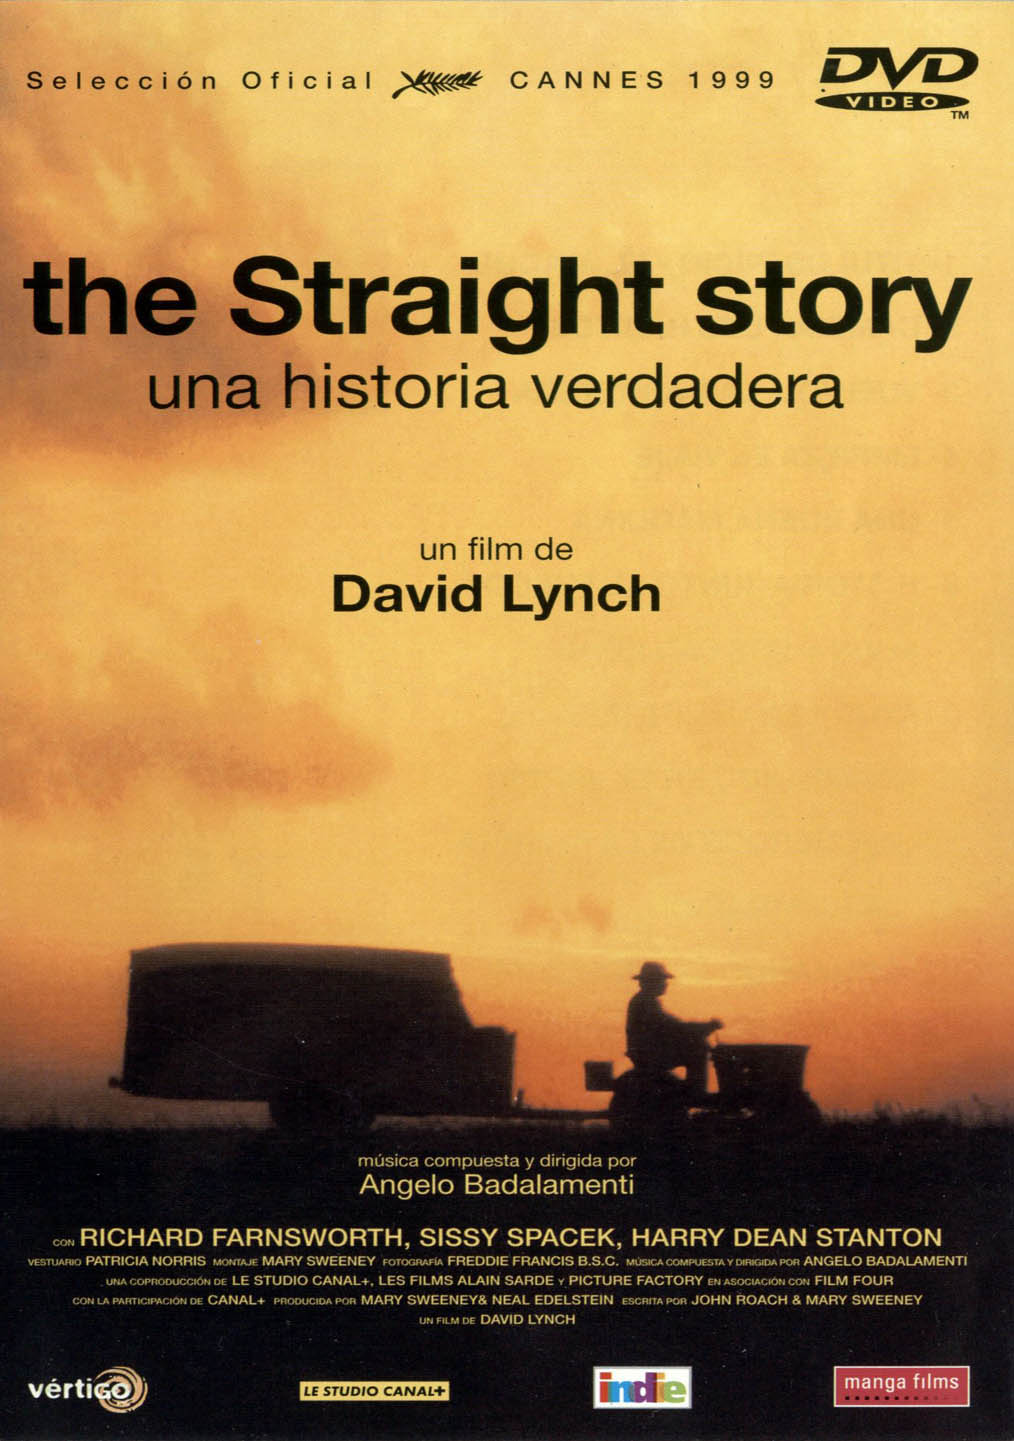 https://esenciacine.files.wordpress.com/2012/04/the_straight_story_una_historia_verdadera-interior_frontal.jpg